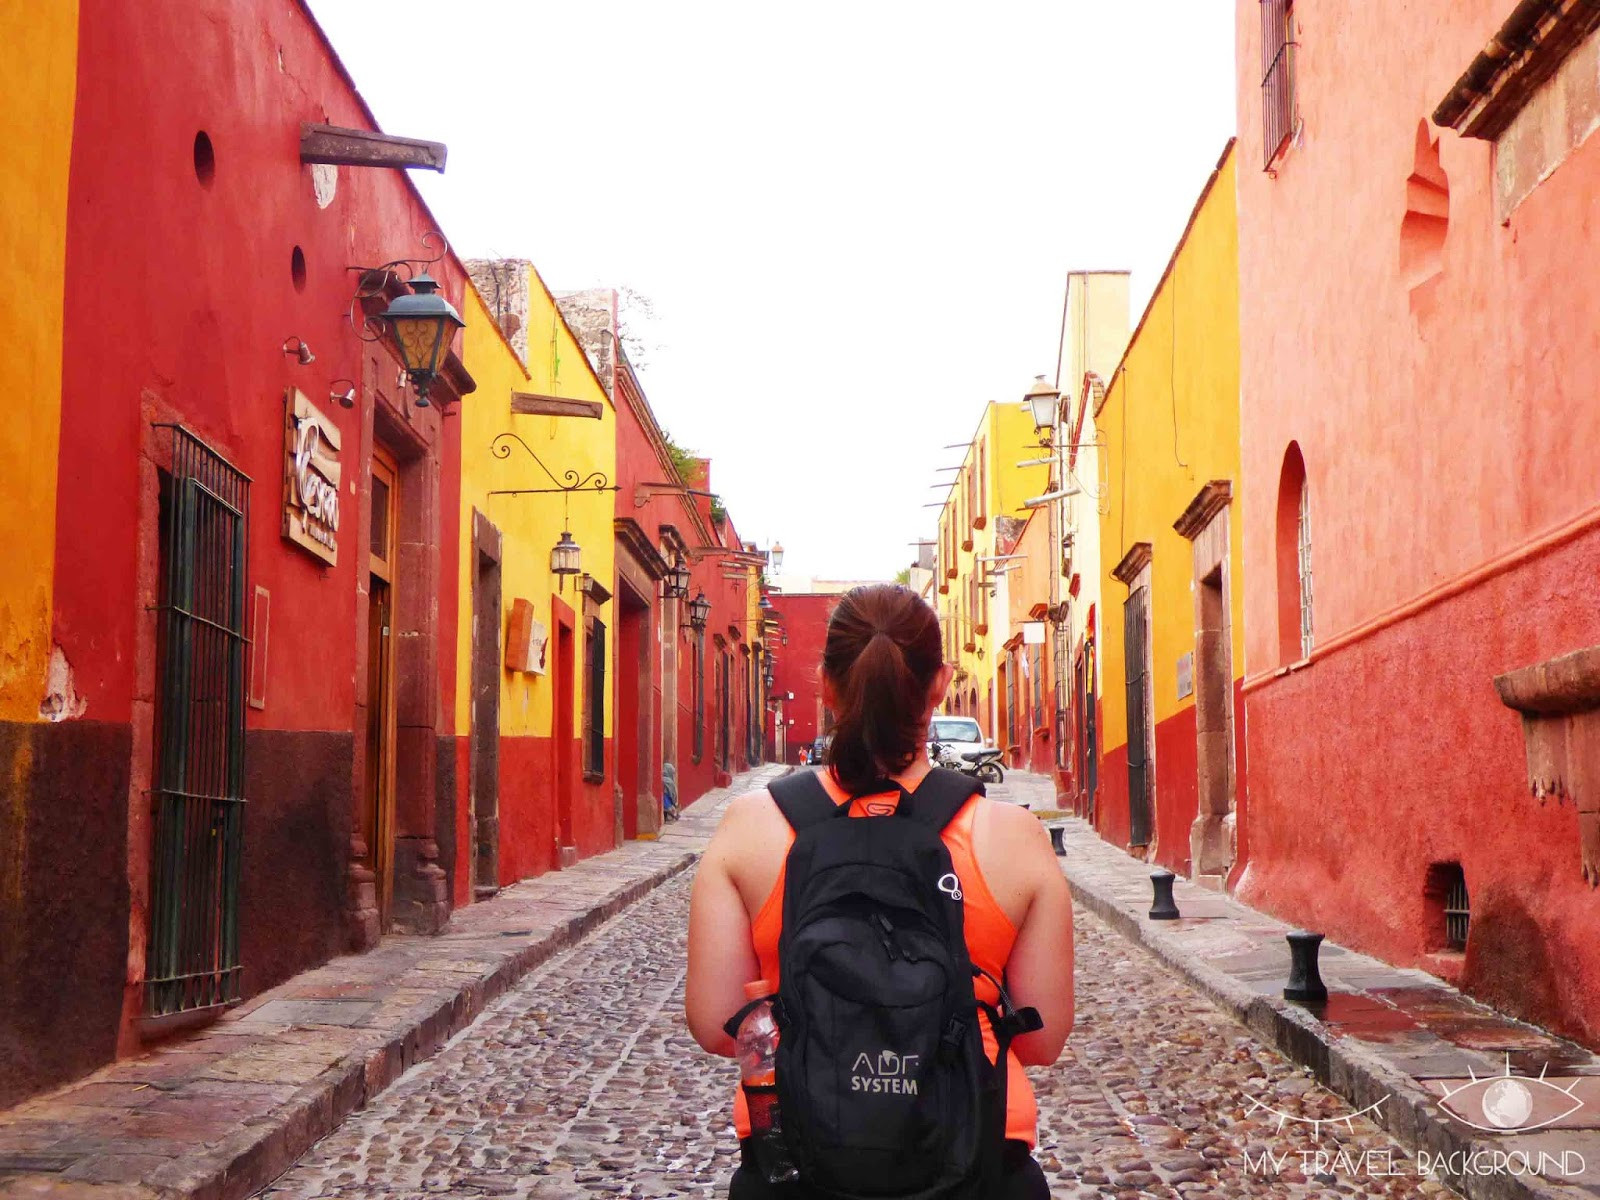 My Travel Background : Road Trip au Mexique, itinéraire et infos pratiques - San Miguel De Allende